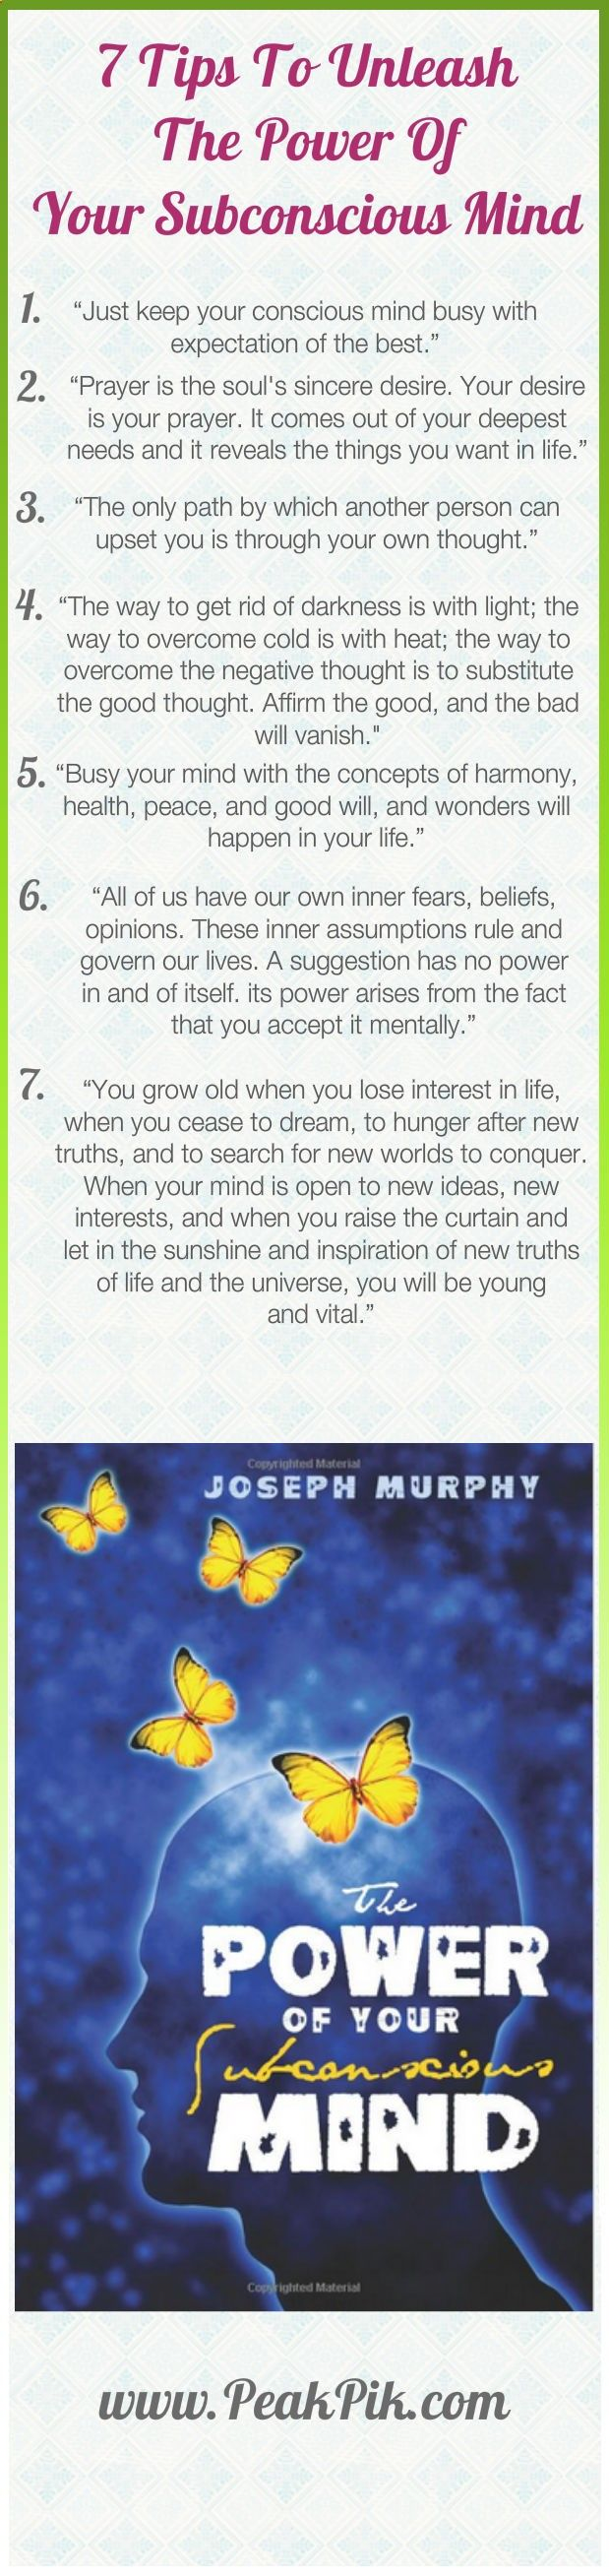 In The Power of Your Subconscious Mind, Dr. Joseph Murphy gives you the tools you will need to unlock the awesome powers of your subconscious mind. You can improve your relationships, your finances, your physical well-being. Once you learn howhttp://peakpik.com/blog/books/power-of-positive-thinking-how-to-unleash-your-subconscious-minds-power/